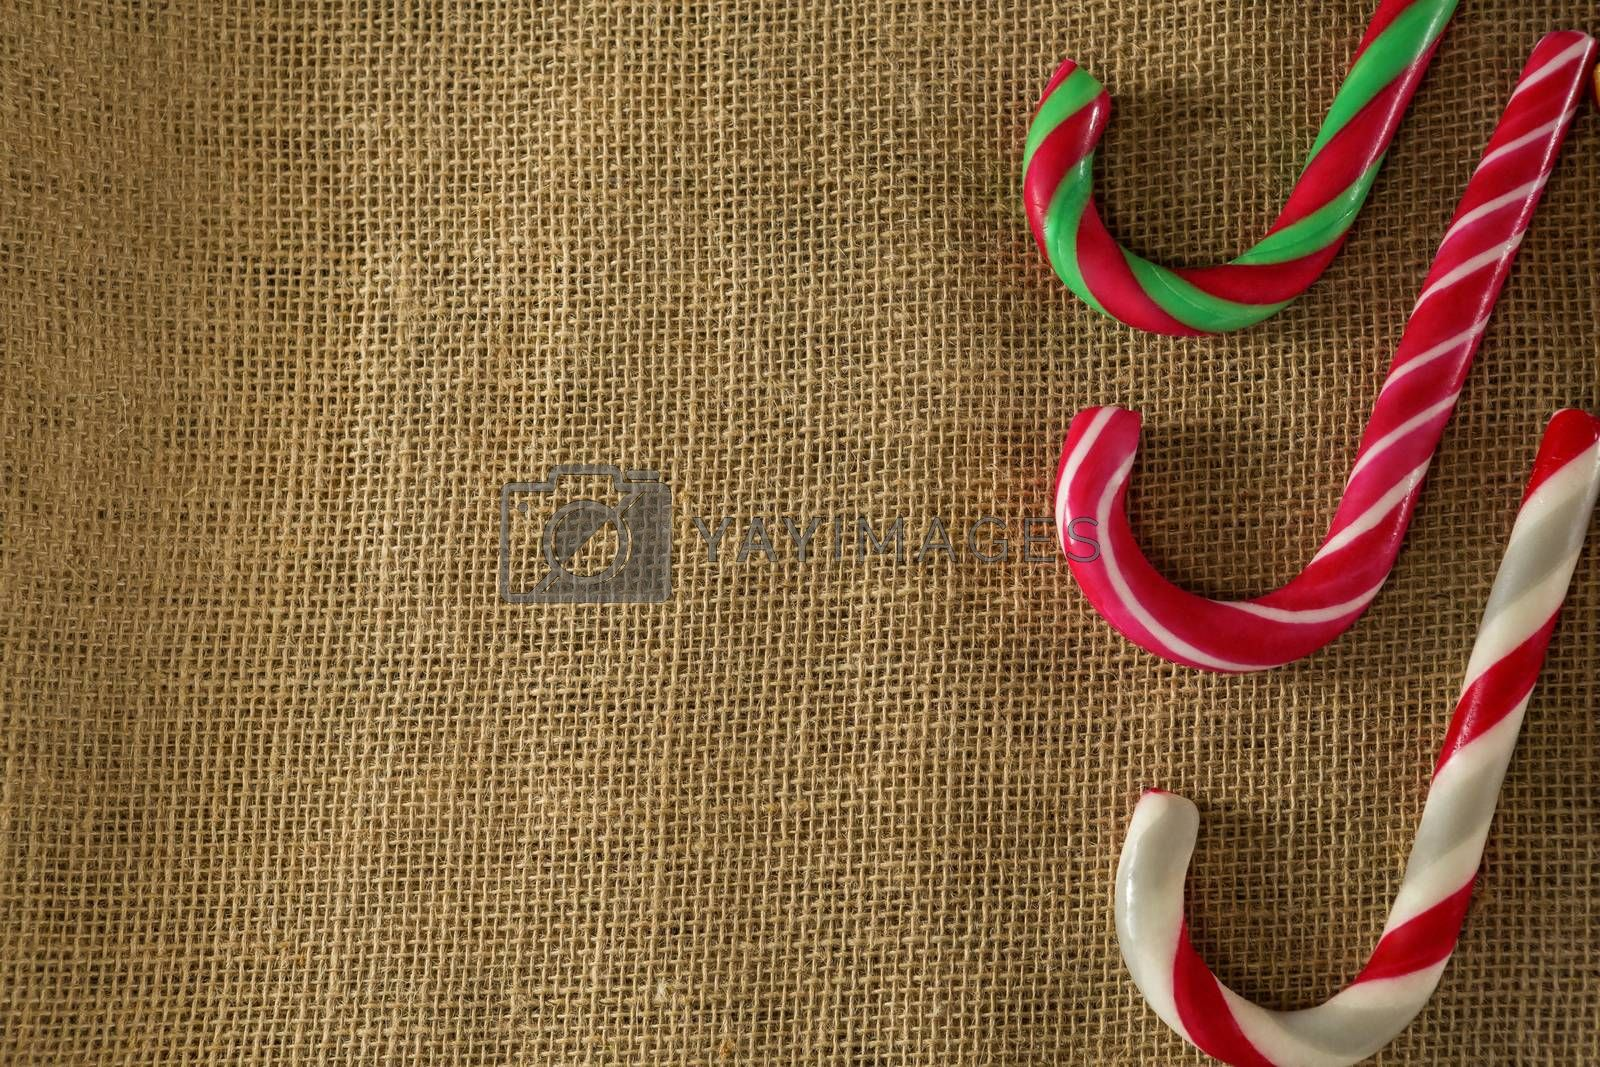 Multicolored candy canes arranged on fabric by Wavebreakmedia